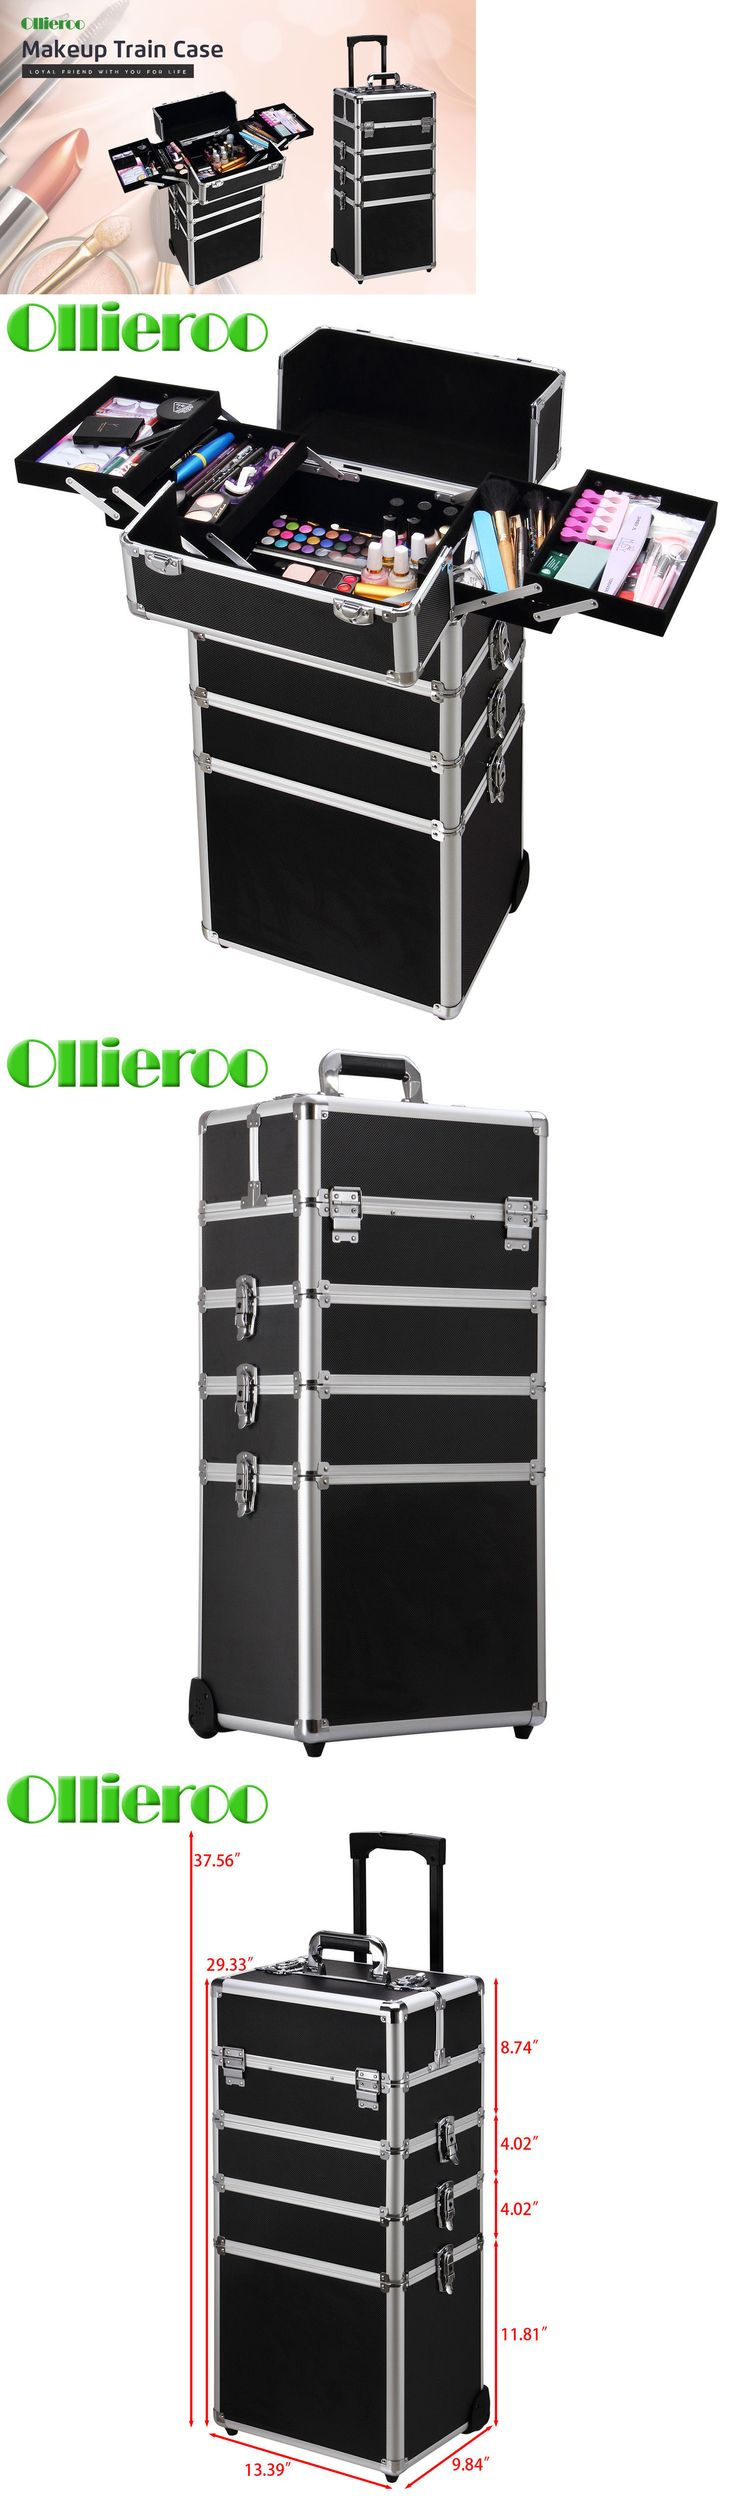 Rolling Makeup Cases: Ollieroo 4 In 1 Aluminum Rolling Cosmetic Makeup Train Cases Trolley Artist Box -> BUY IT NOW ONLY: $89.99 on eBay!